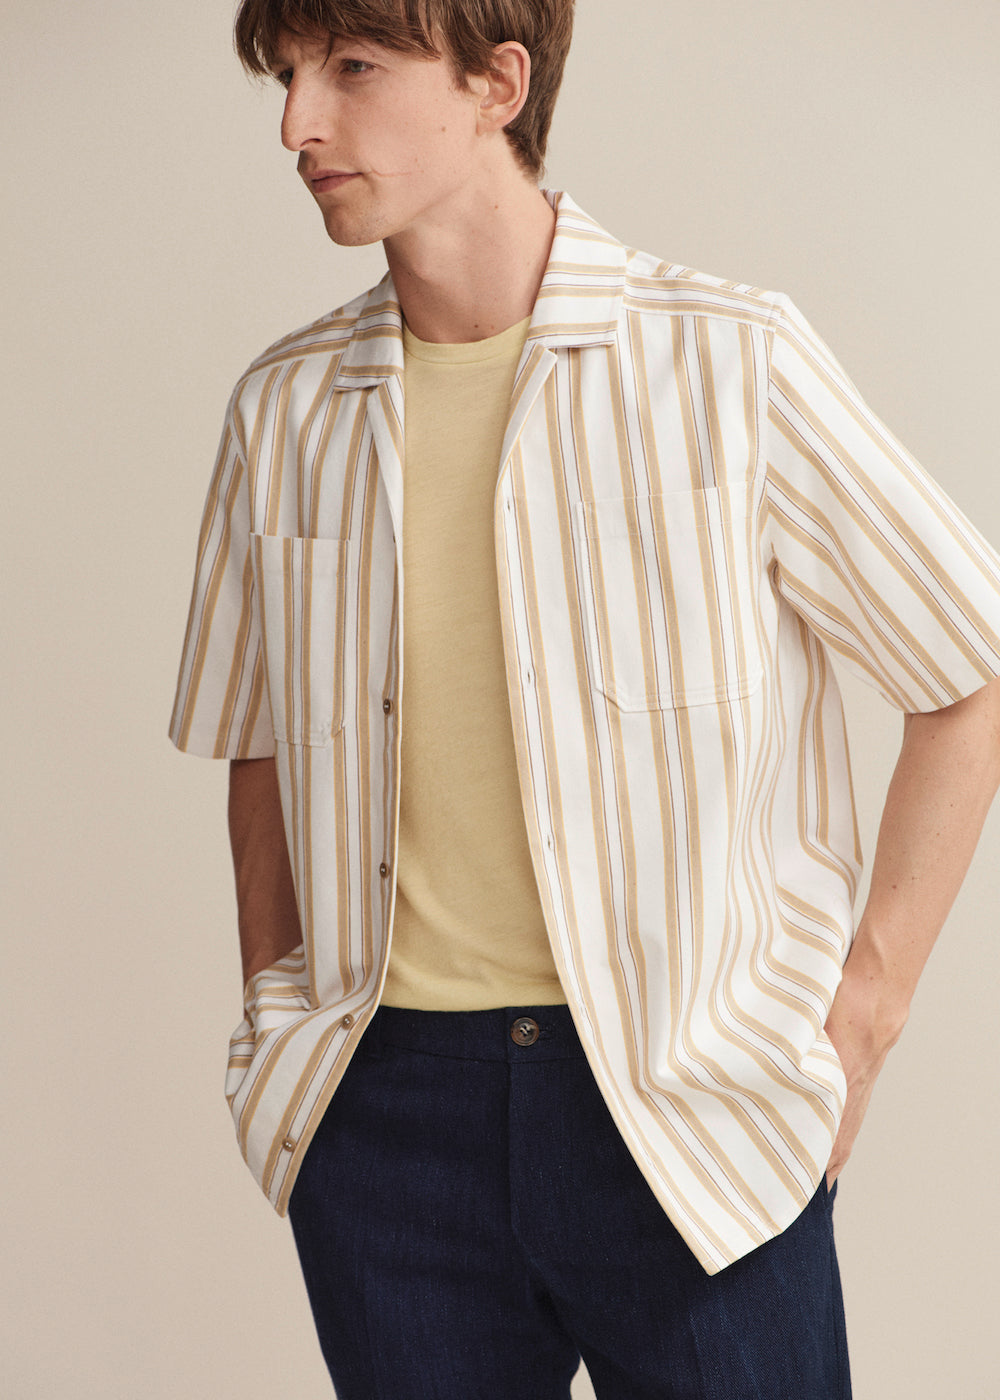 Stripe Pocket Bowling Shirt - King & Tuckfield